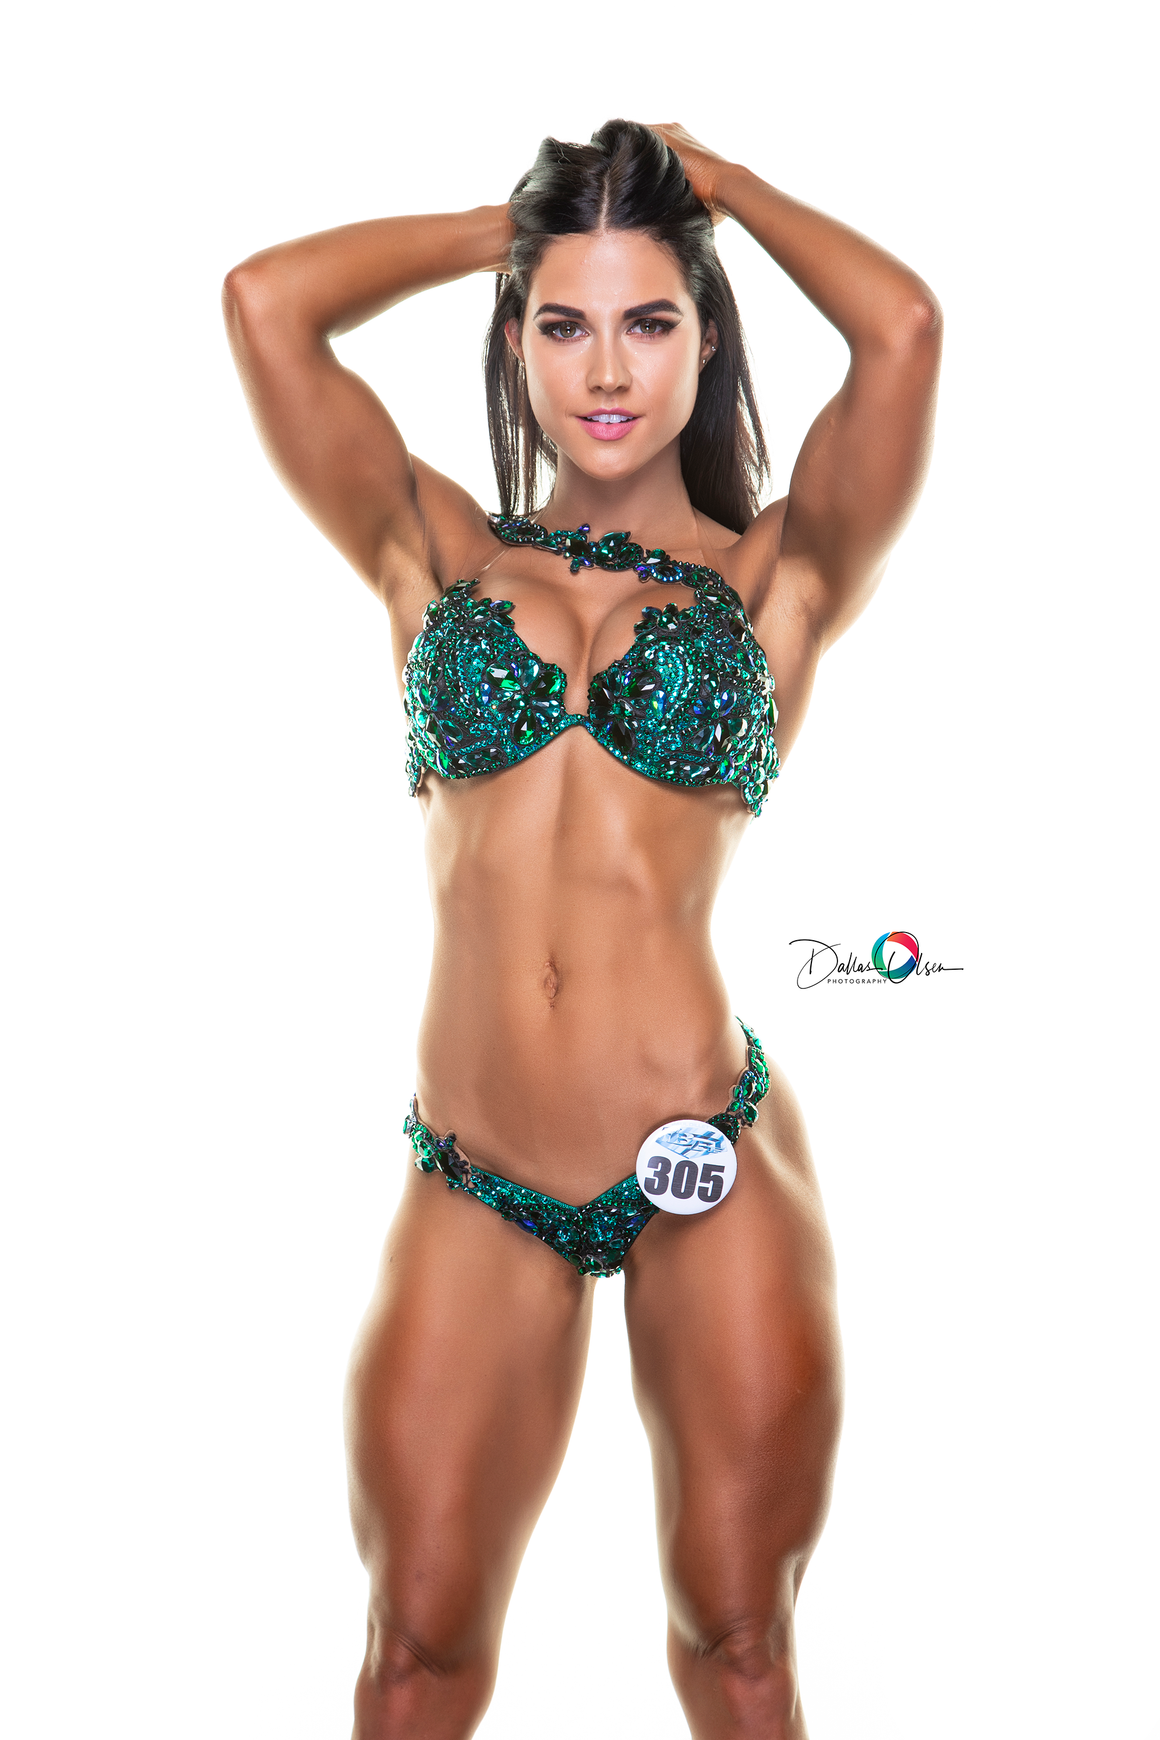 Sharelle grant WBFF green couture competition bikini